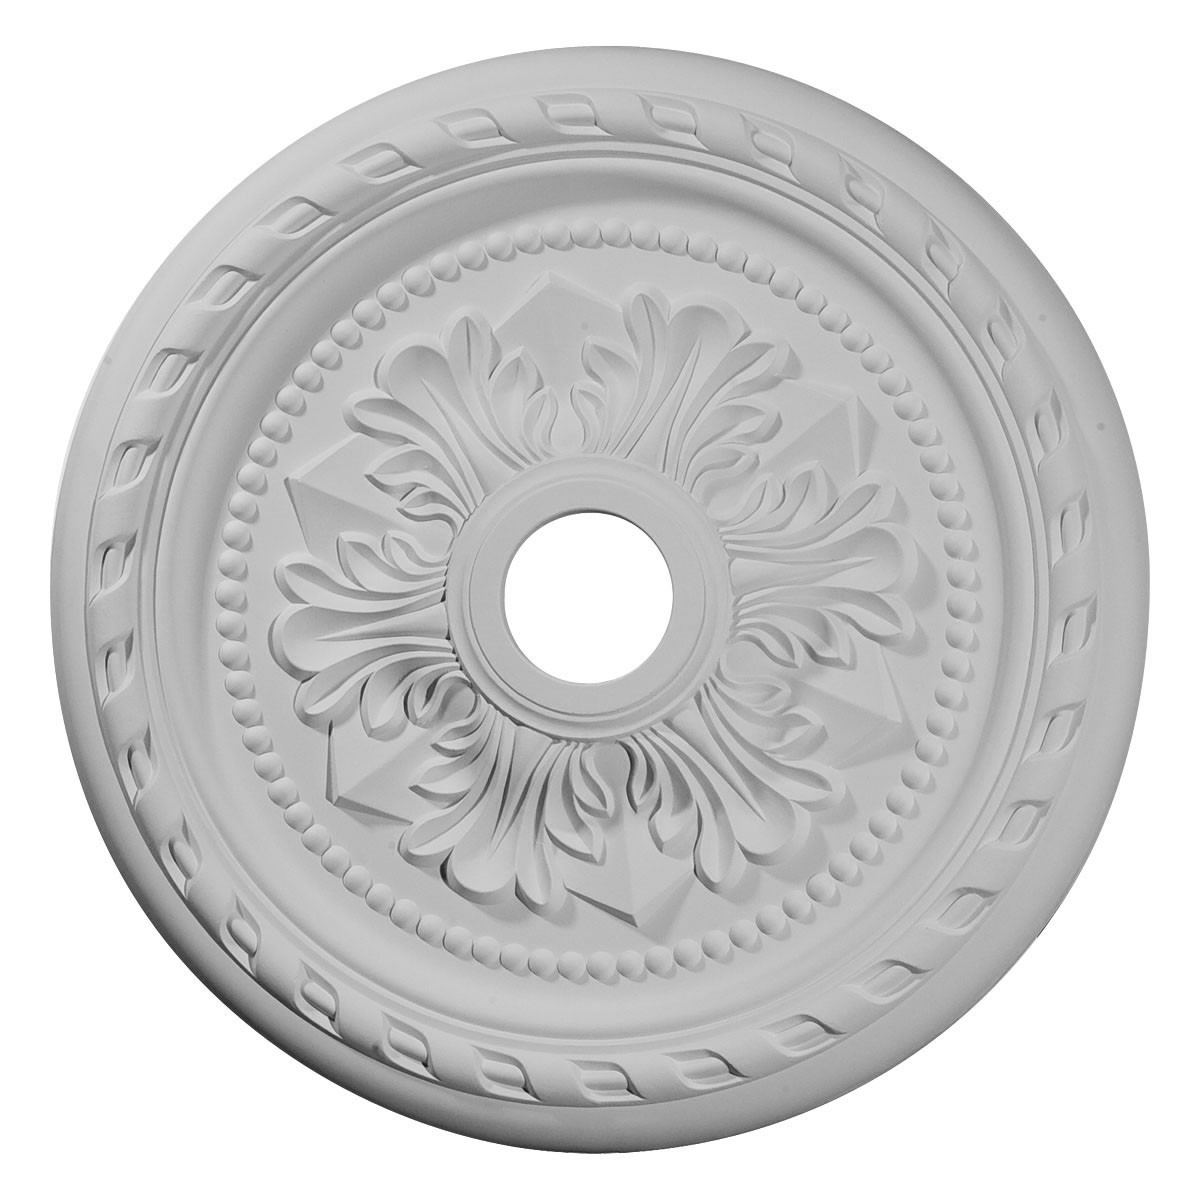 """EM-CM23PM - 23 5/8""""OD x 3 5/8""""ID x 1 5/8""""P Palmetto Ceiling Medallion (Fits Canopies up to 3 5/8"""")"""